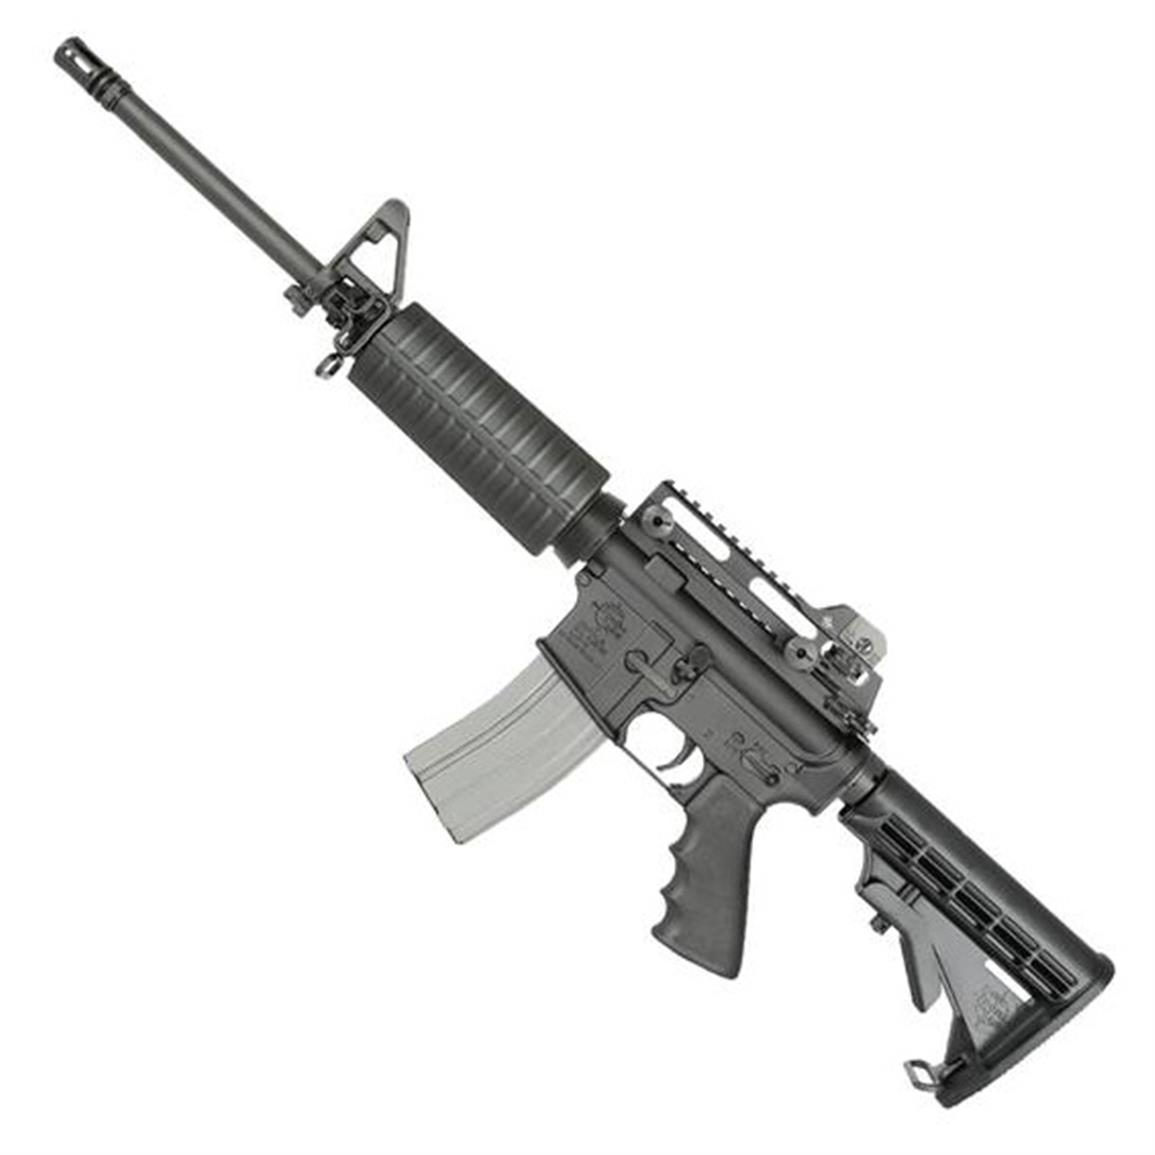 Rock River Arms LAR-15 Tactical CAR A4, Semi-automatic, 5.56x45mm, AR1200, 151550004601, 16 inch Barrel